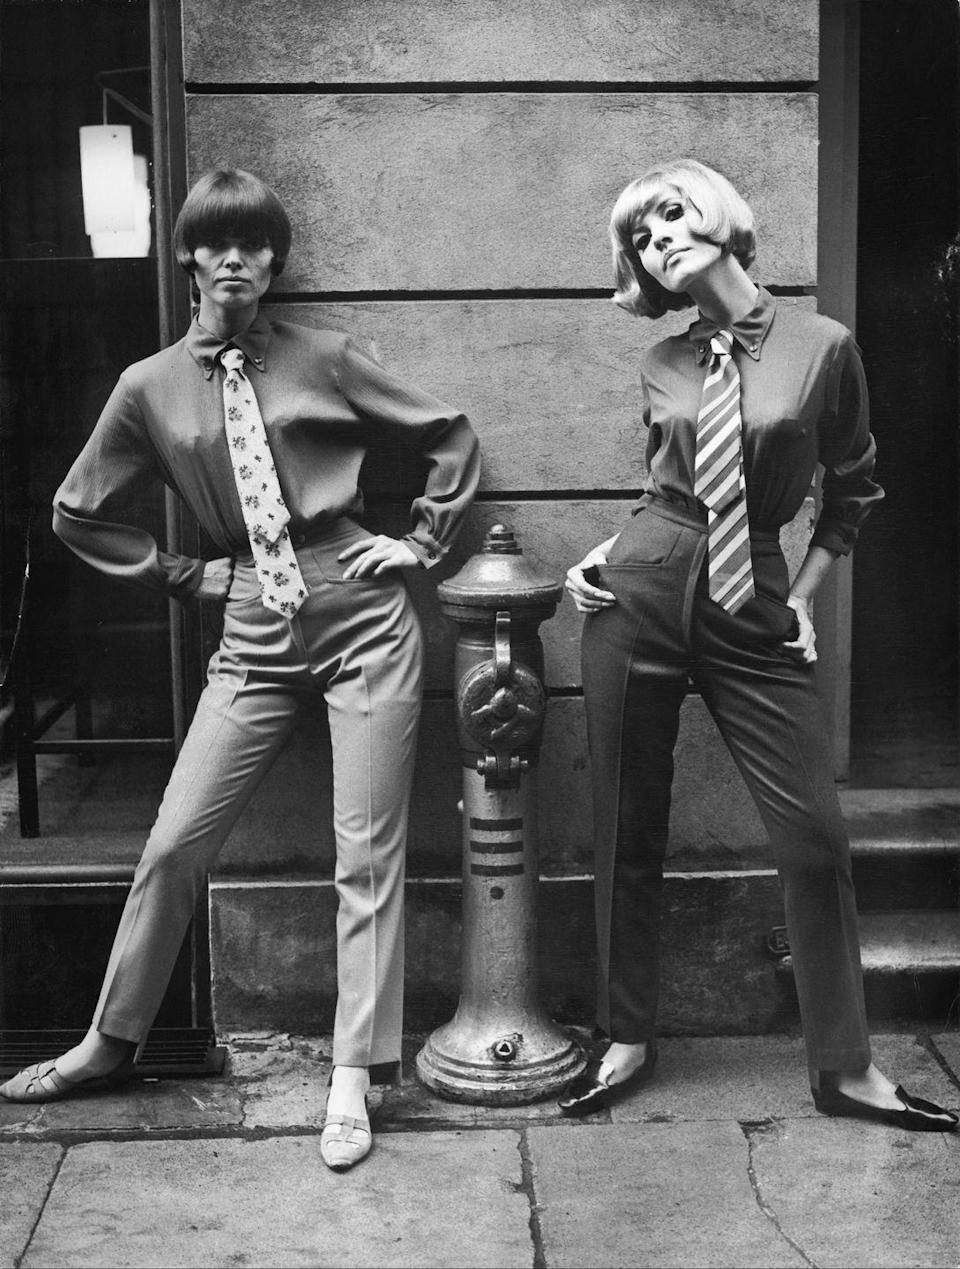 <p>The '60s became a time for women to express themselves through clothing, which meant wearing pants more regularly, an item once taboo for women. </p>